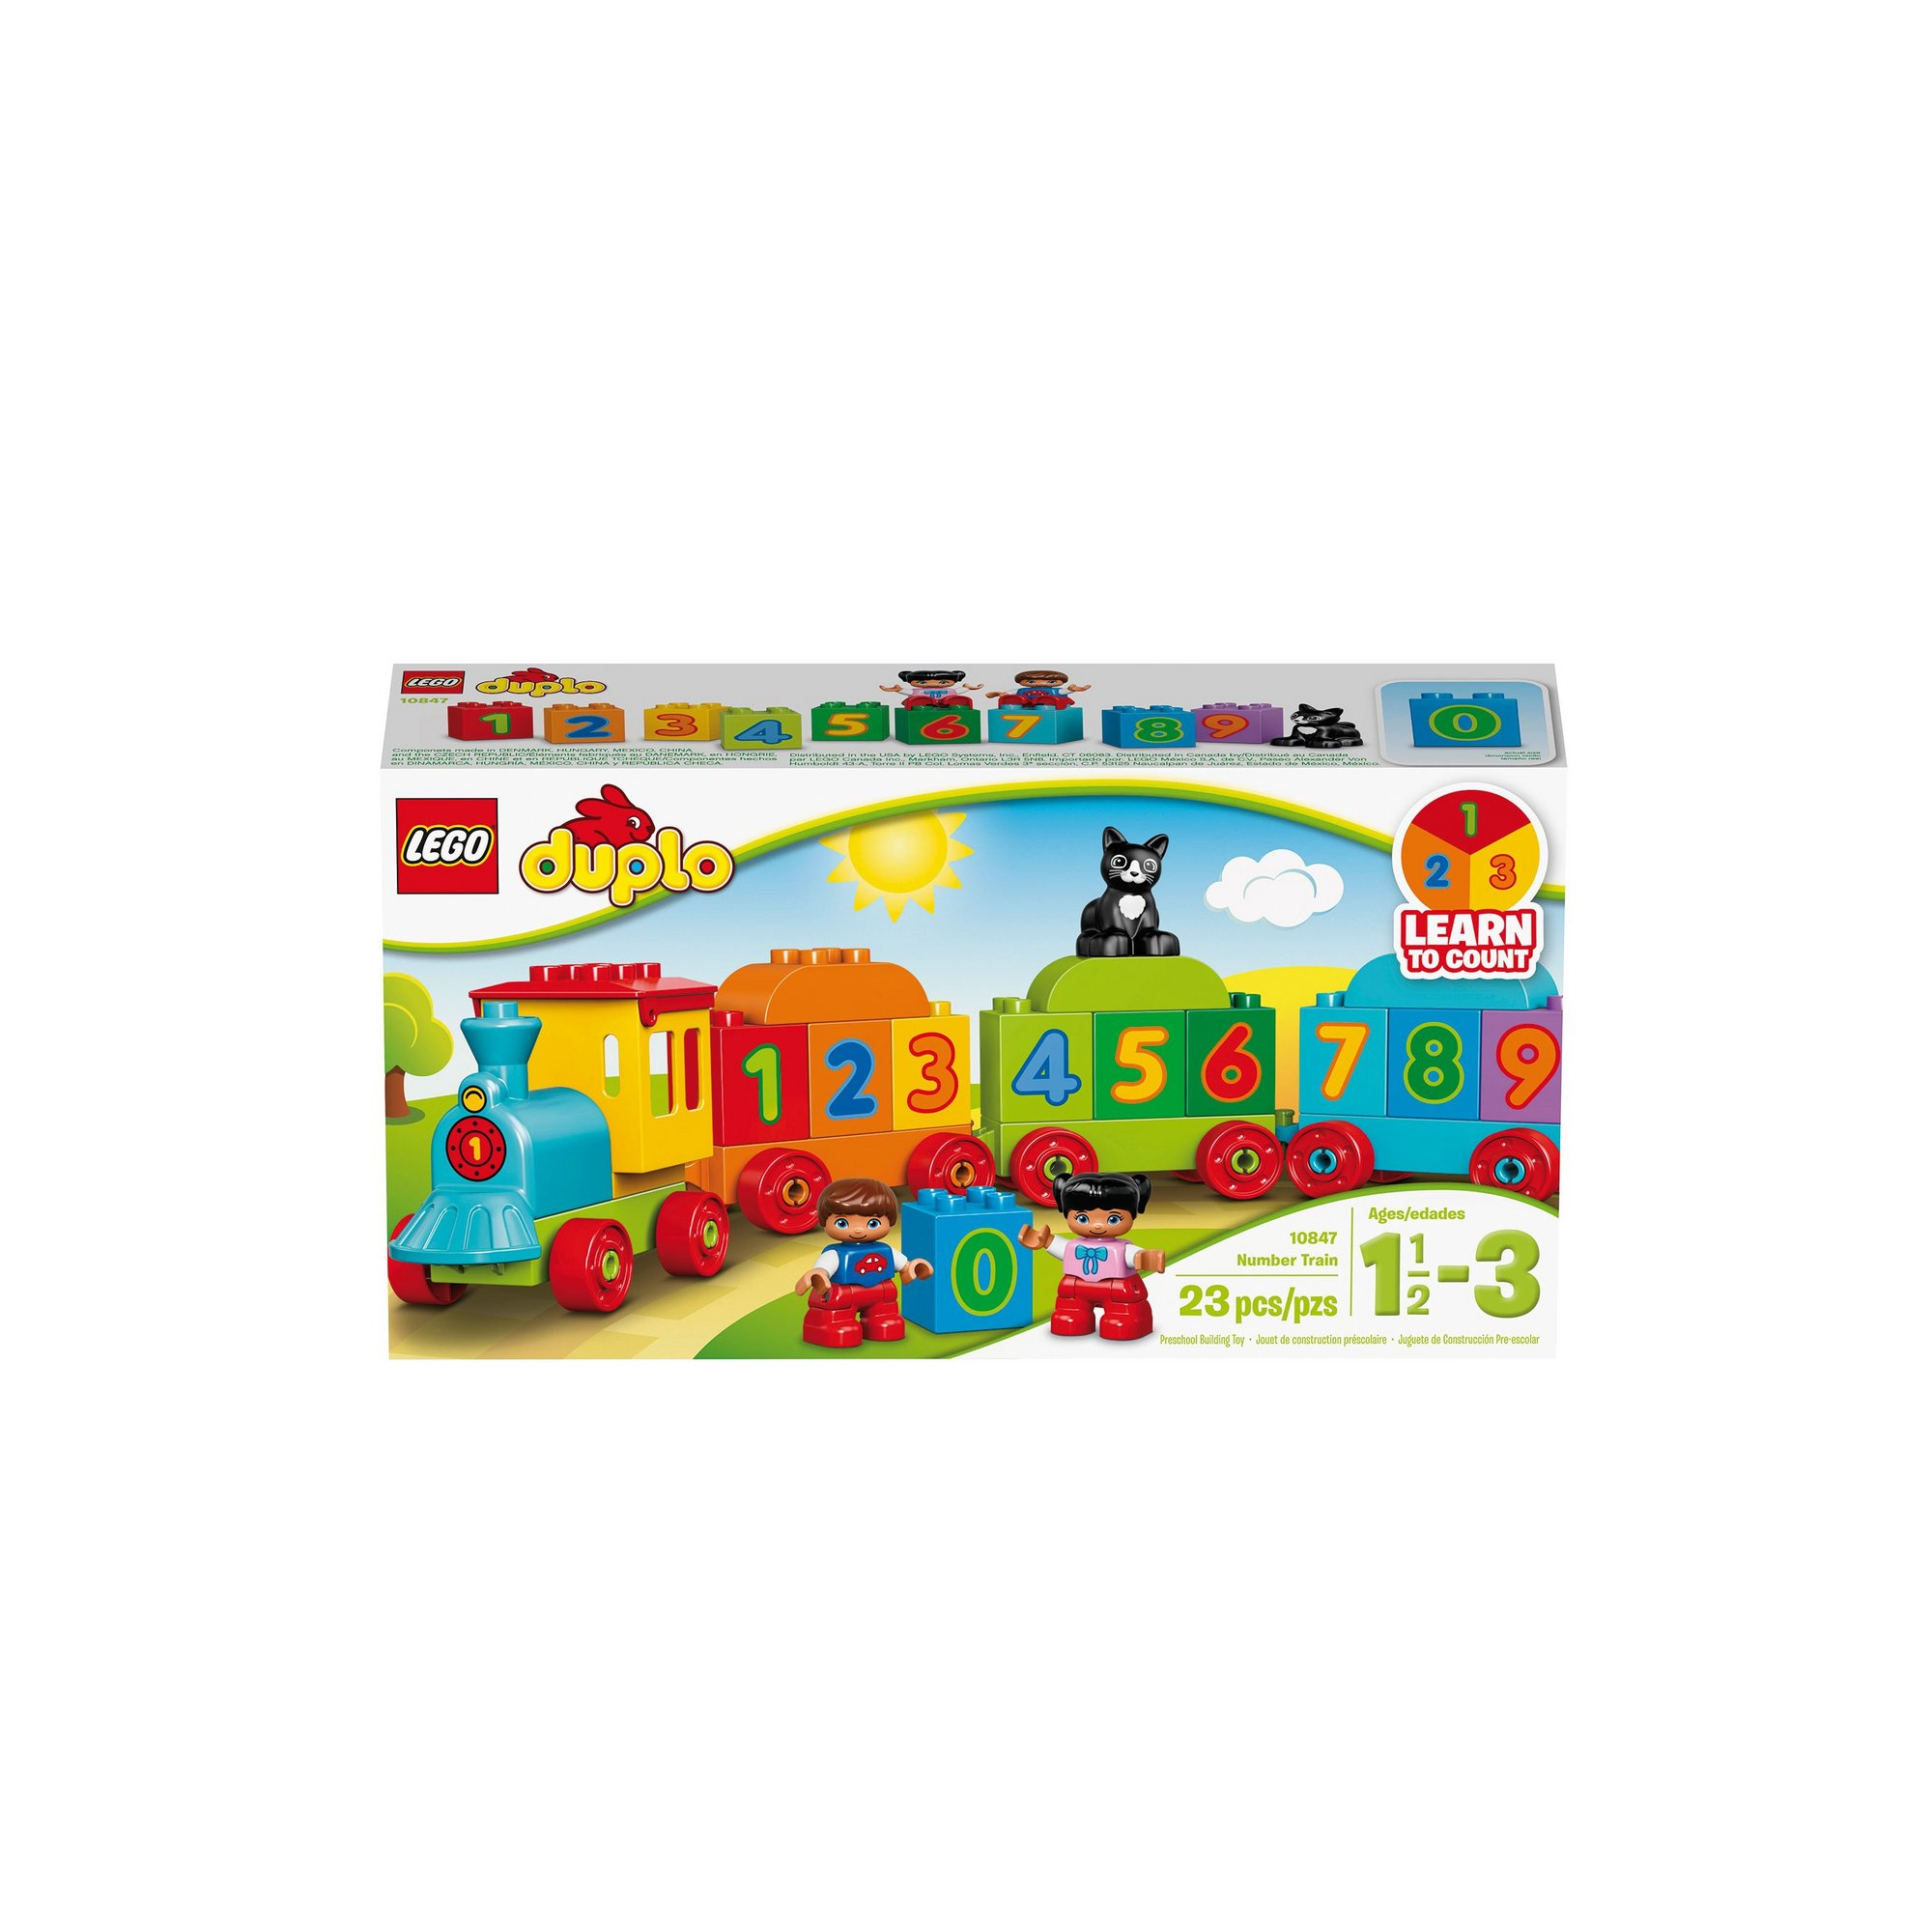 Image of LEGO Duplo My First Number Train